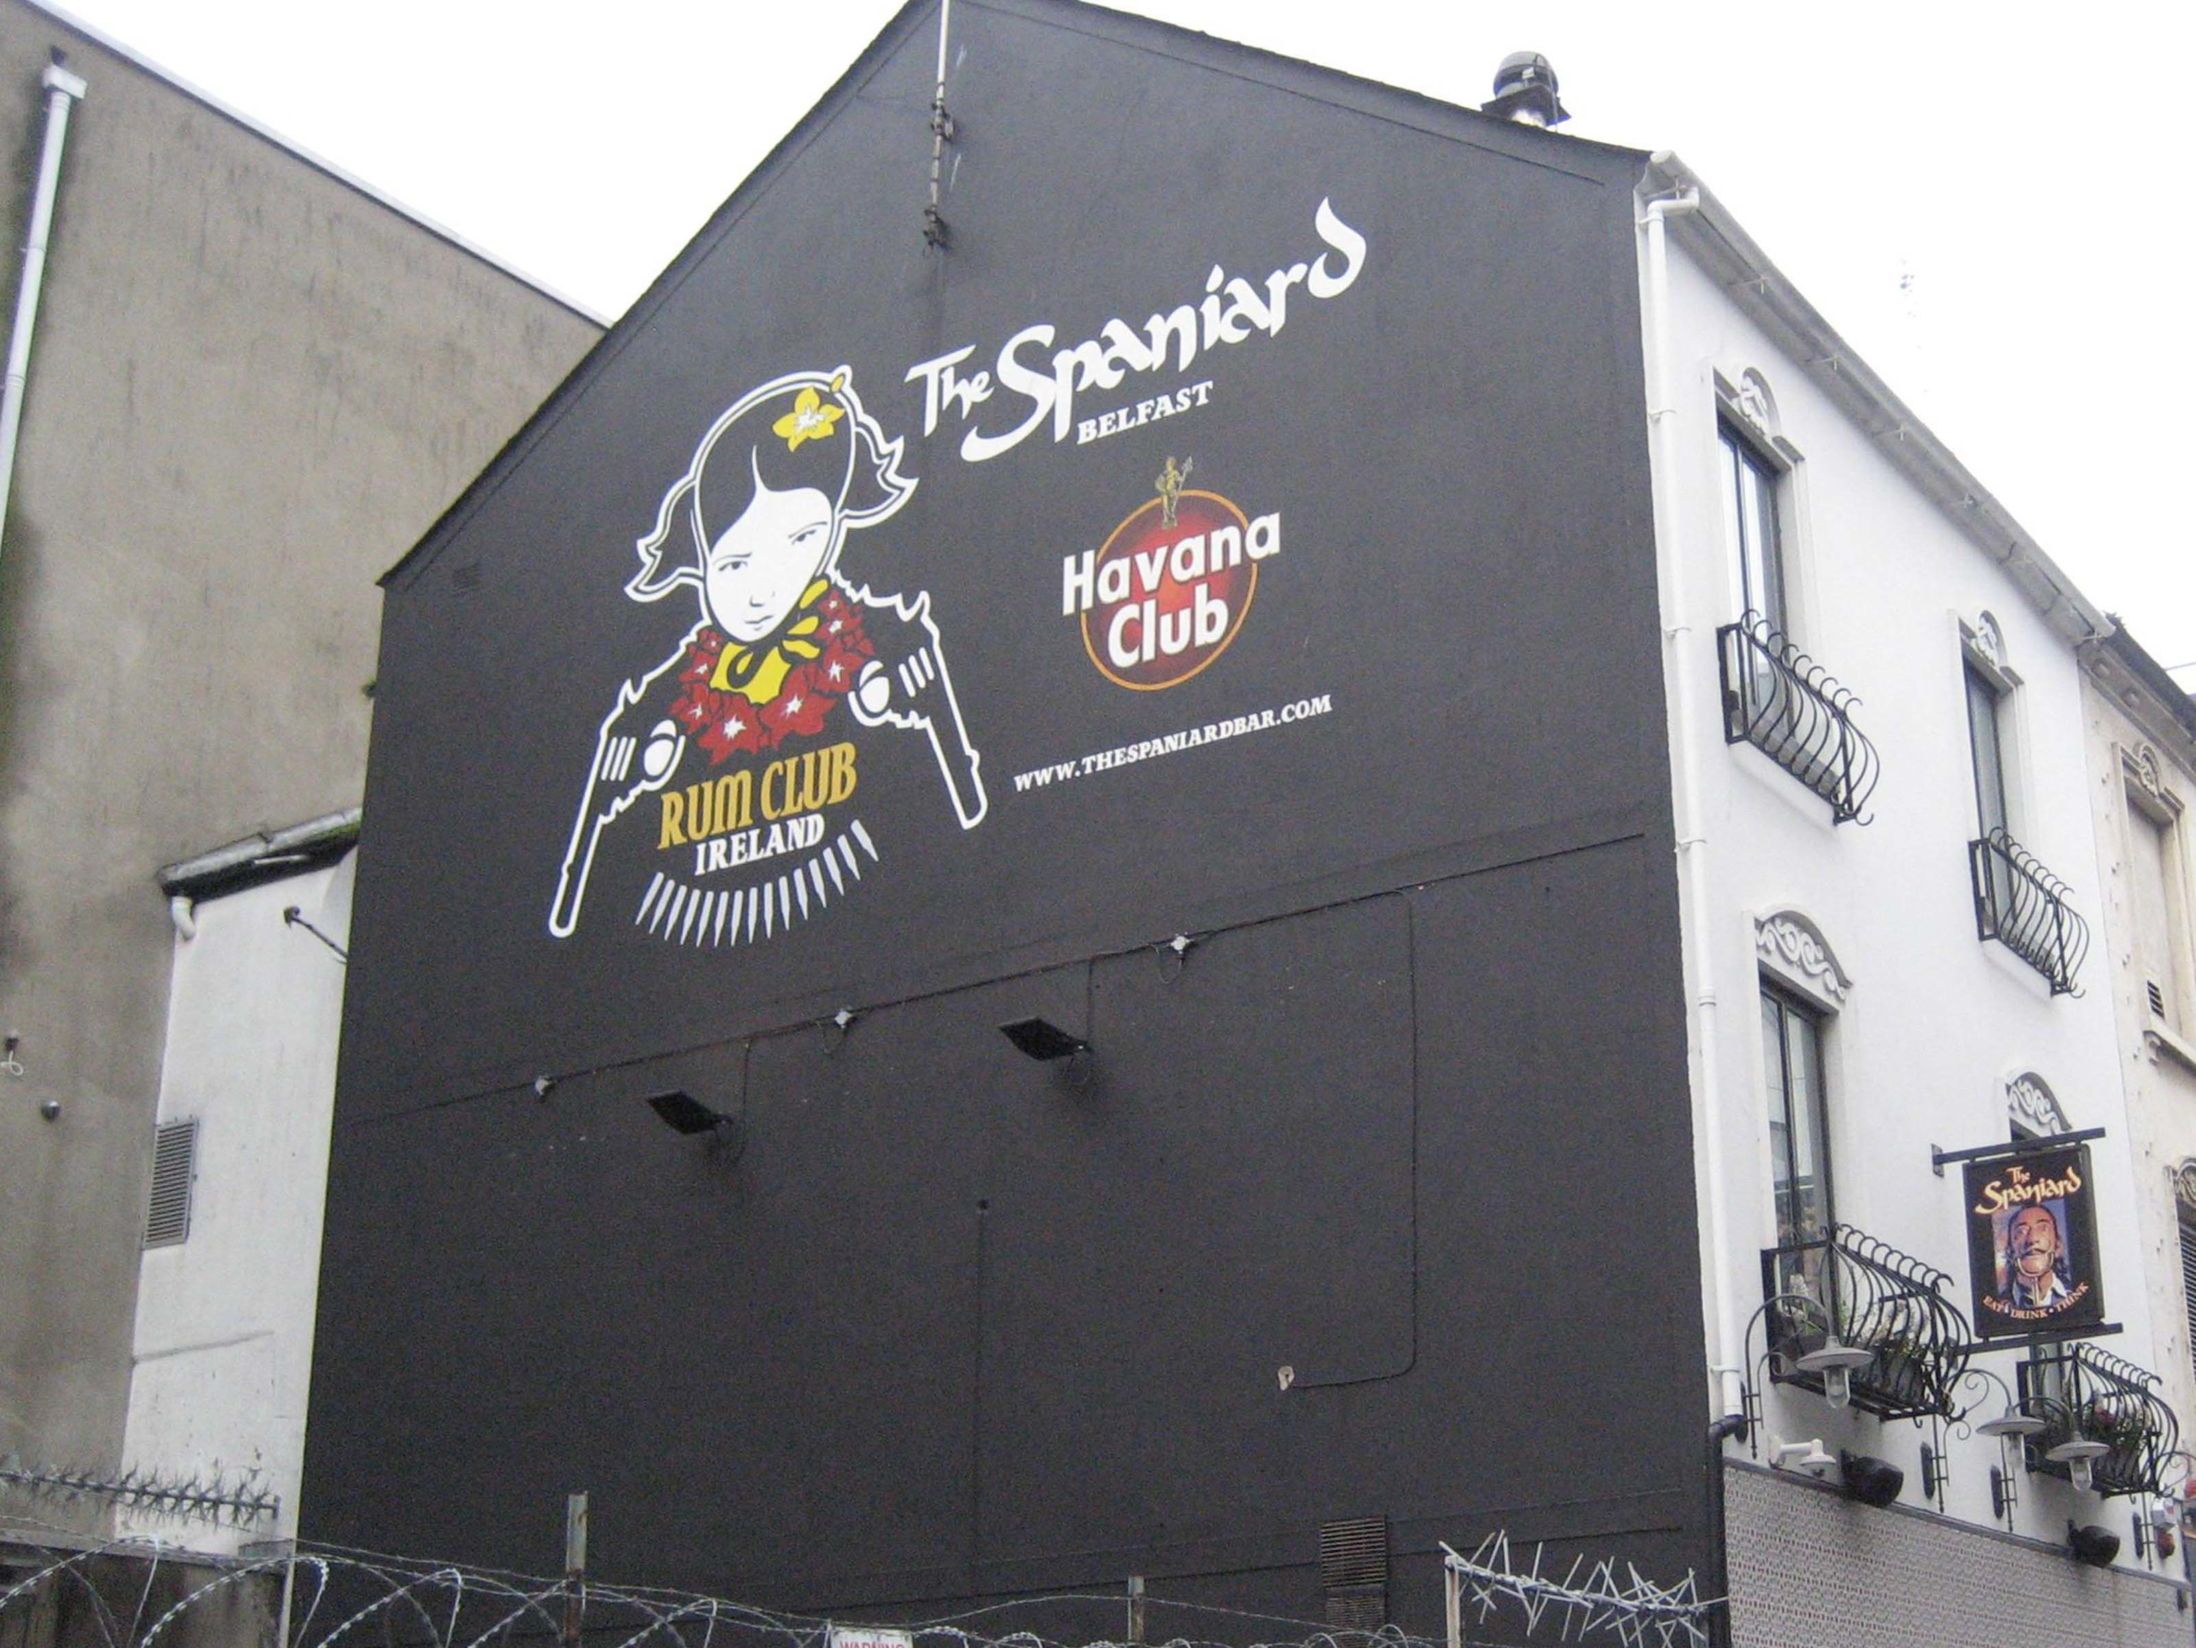 Best Pubs in Belfast - The Spaniard